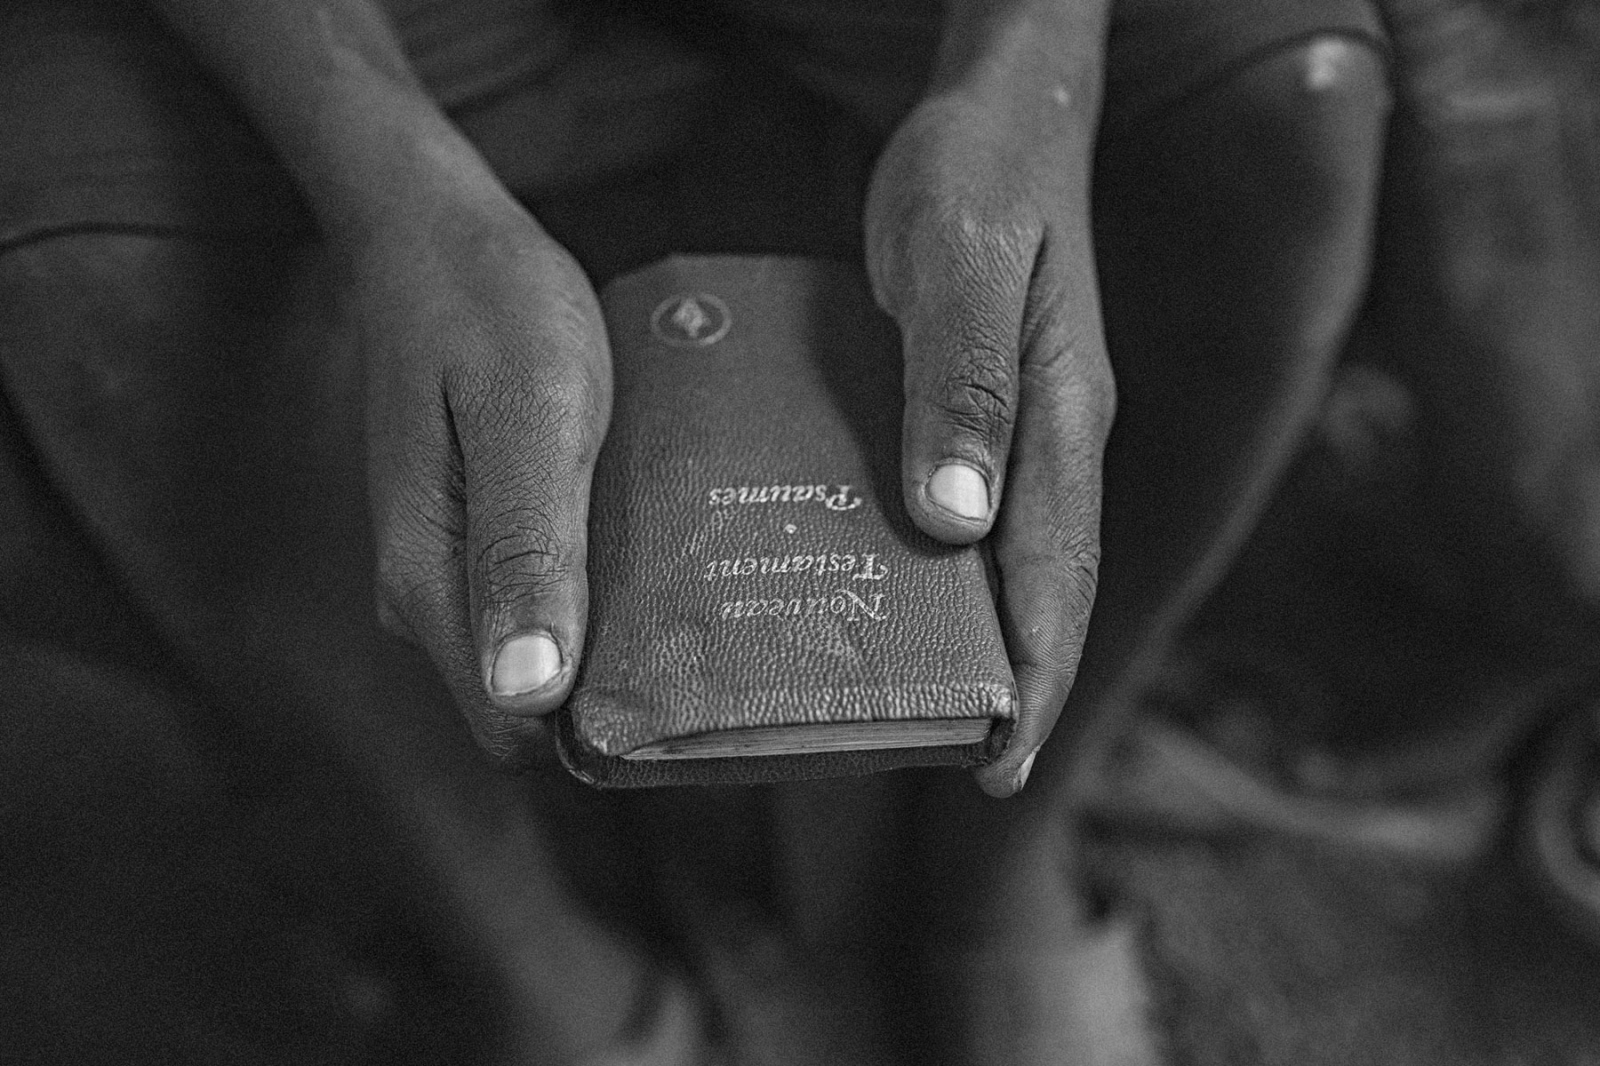 A former child soldier holds a book of Psalms in UPDECO's transit center in Rutshuru, Eastern DRC, on Monday, July 21, 2014.